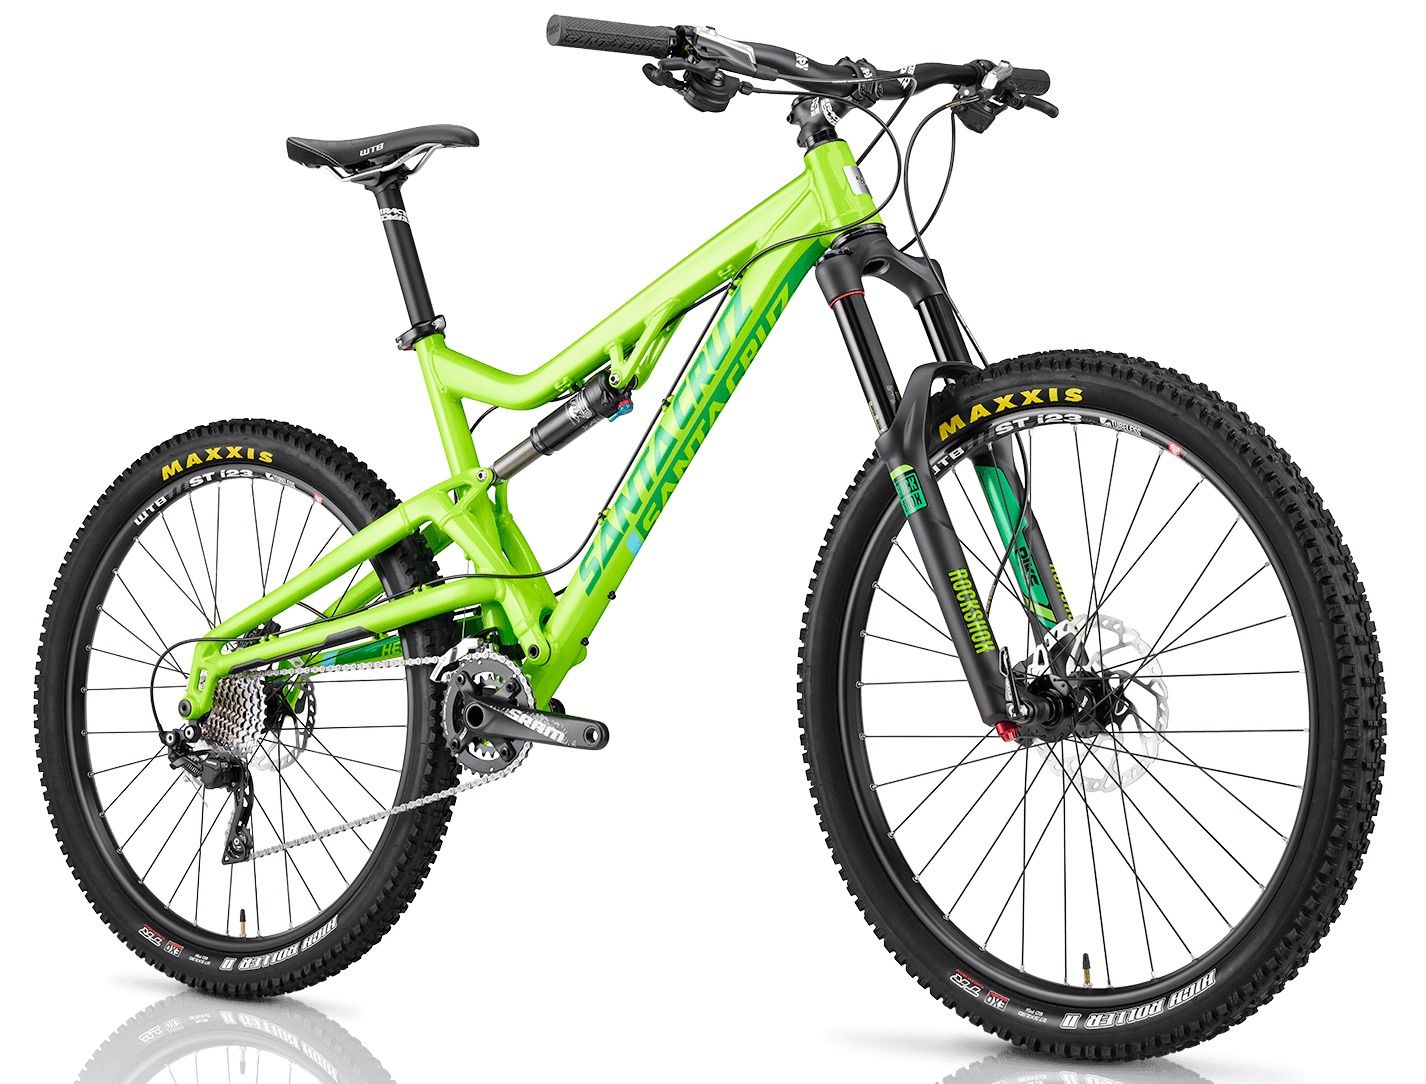 Buyer S Guide Budget Full Suspension Mountain Bikes With Images Full Suspension Mountain Bike Bicycle Mountain Bike Orange Mountain Bike